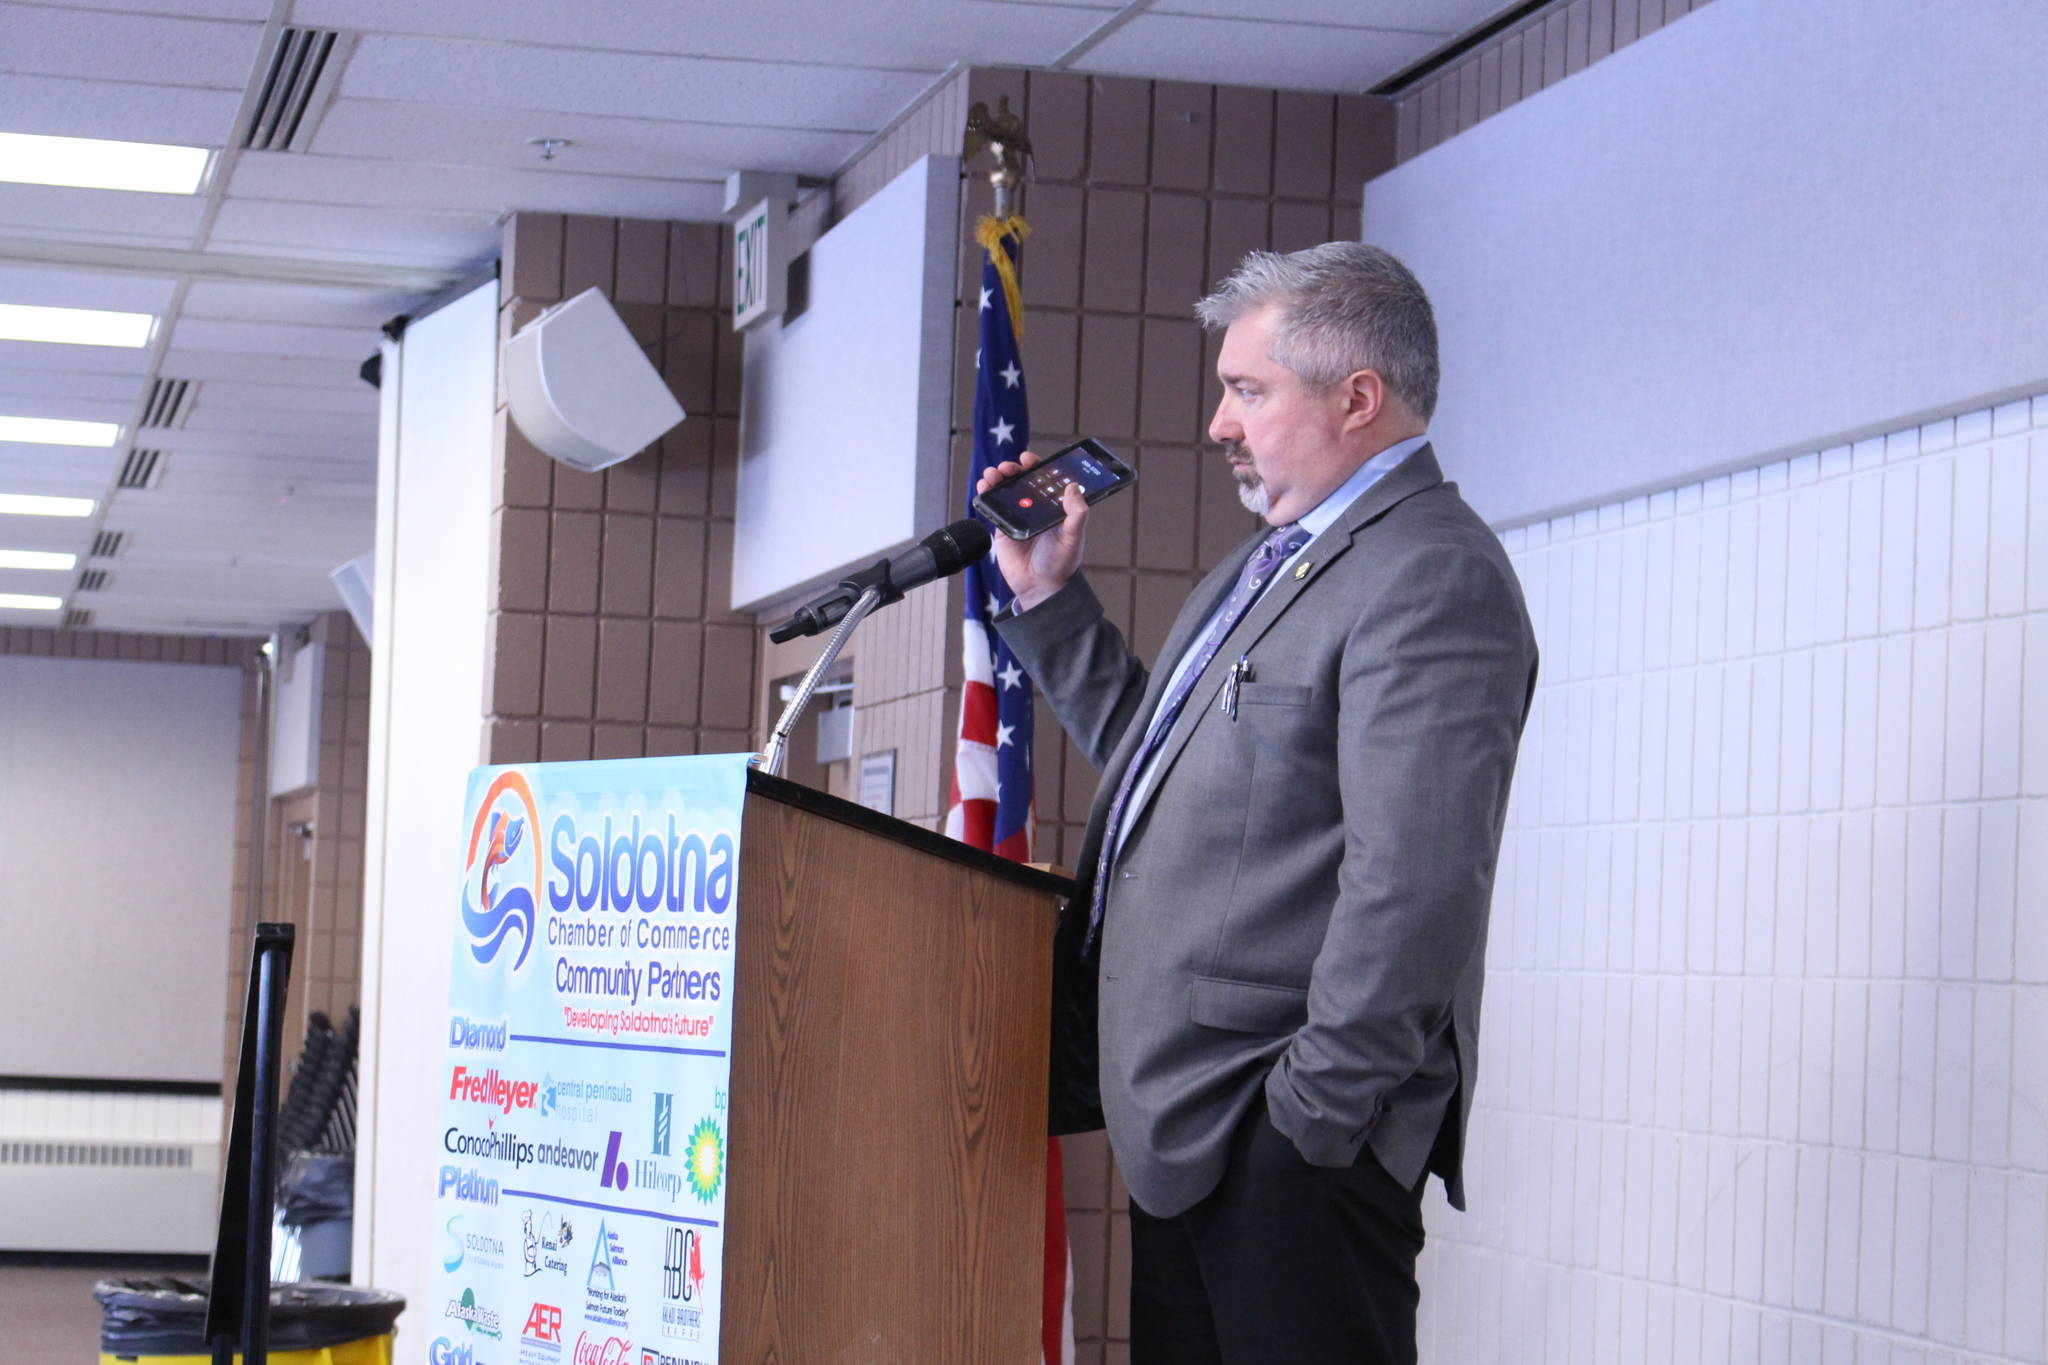 Dave Stieren, community outreach director for Gov. Mike Dunleavy, holds his phone up to the microphone as Dunleavy gives a remote speech to the Kenai and Soldotna Chambers of Commerce at the Soldotna Regional Sports Complex on March 9, 2020. (Photo by Brian Mazurek/Peninsula Clarion)